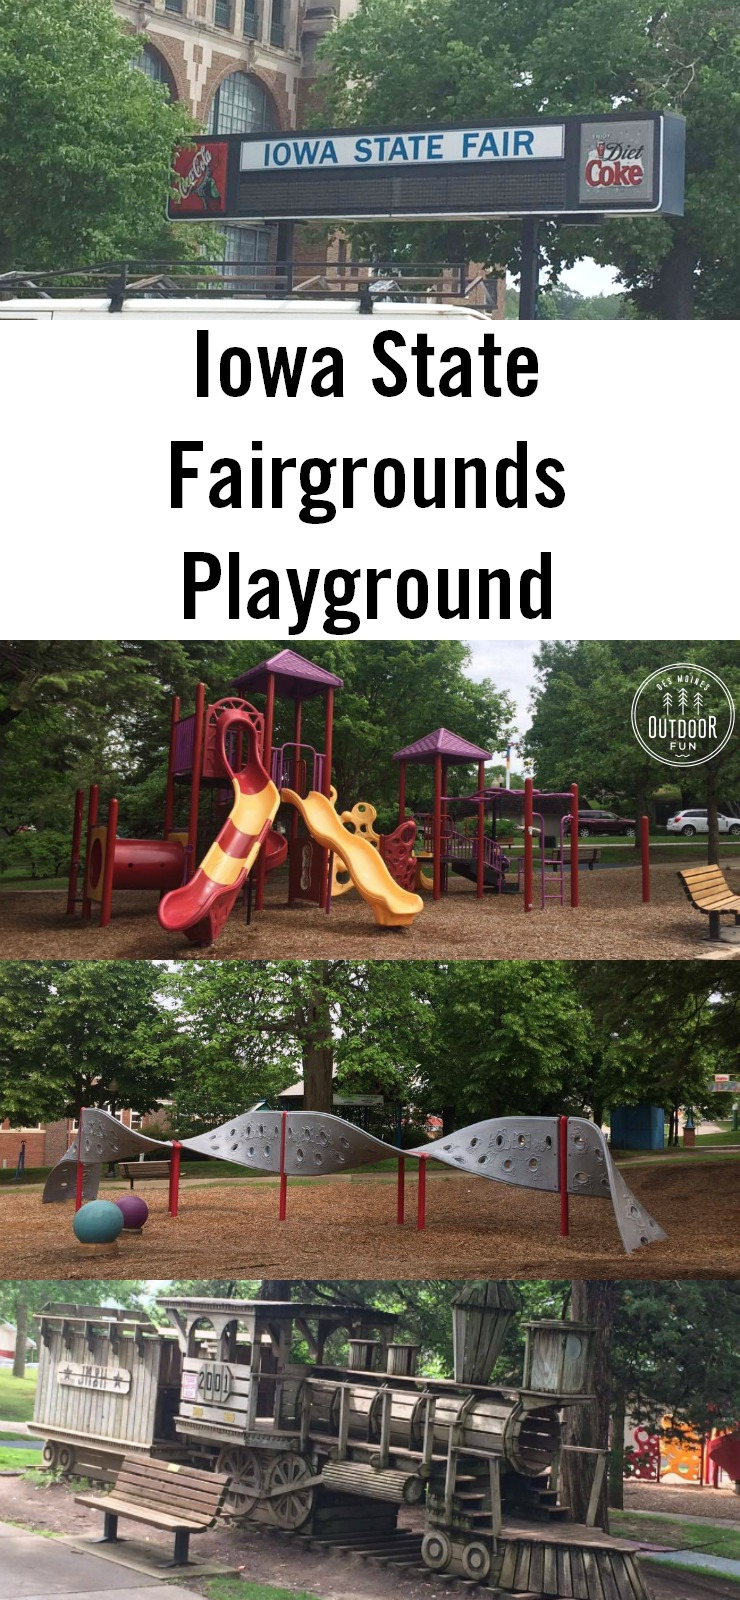 Come see the playground at the Iowa State Fairgrounds! Open year round; this is a great place for kids to play at the Iowa State Fair.